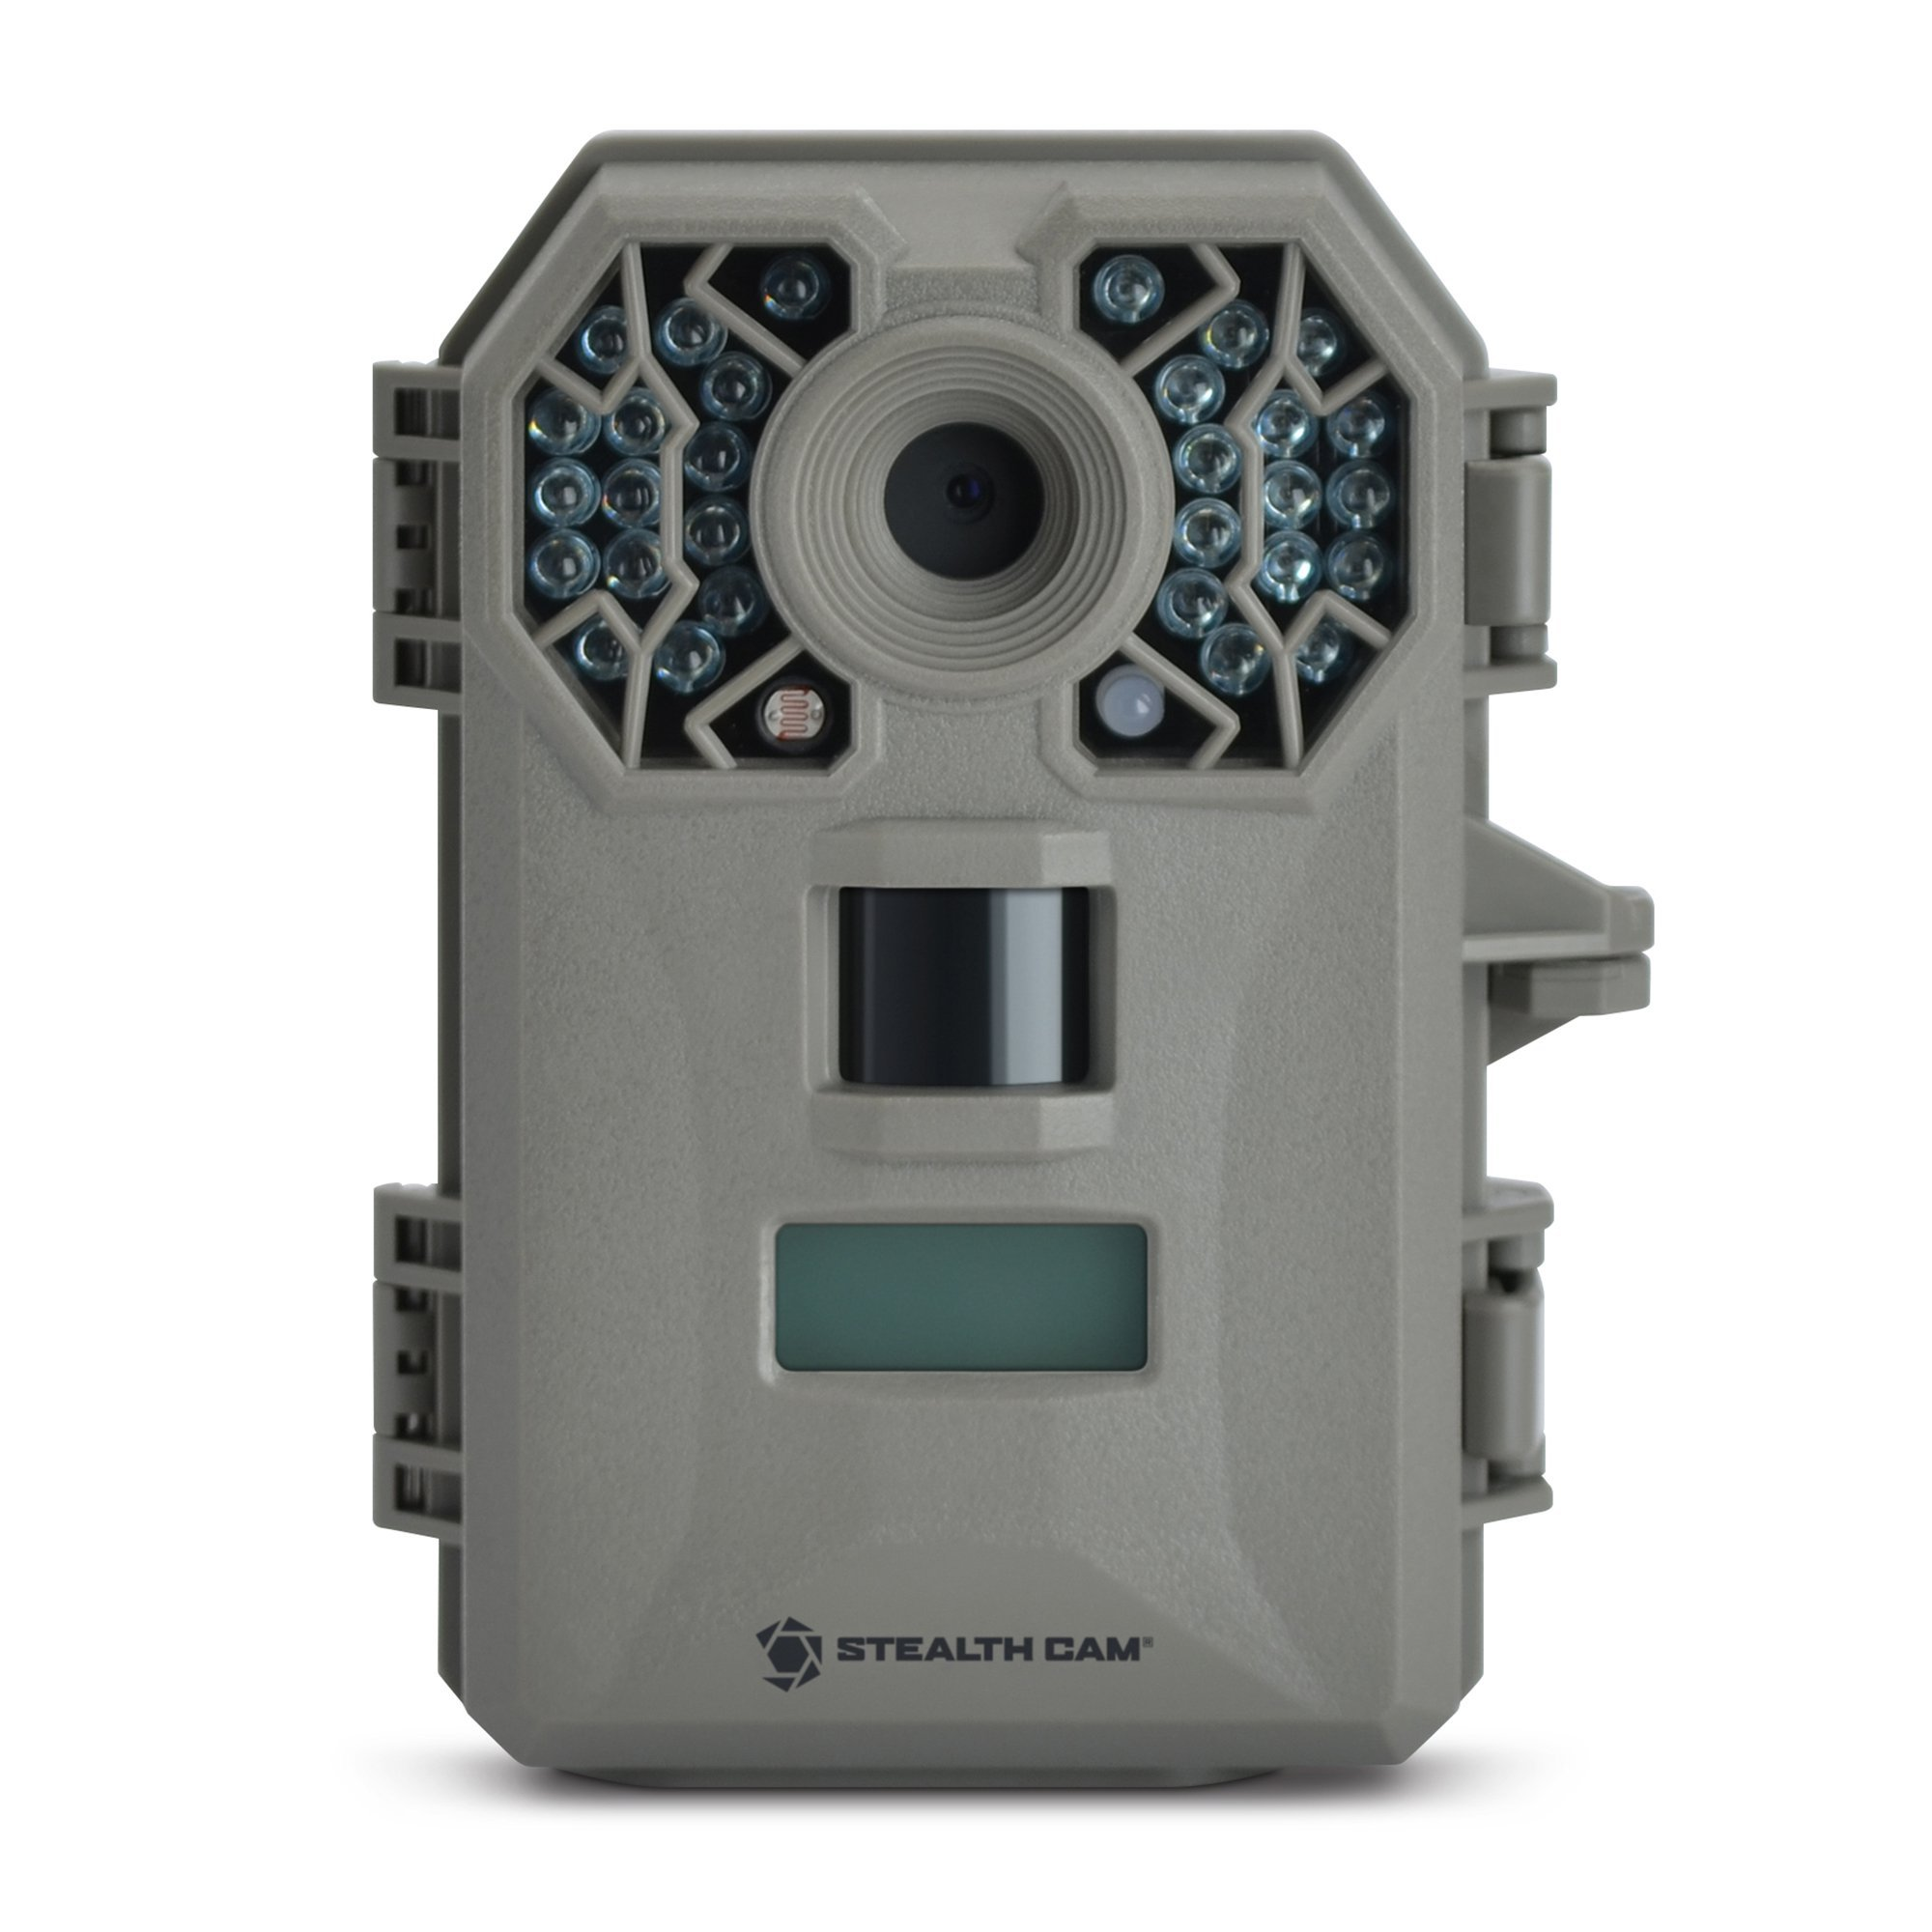 Stealth Cam G42 No-Glo Trail Game Camera STC-G42NG (Gray) by Stealth Cam (Image #1)